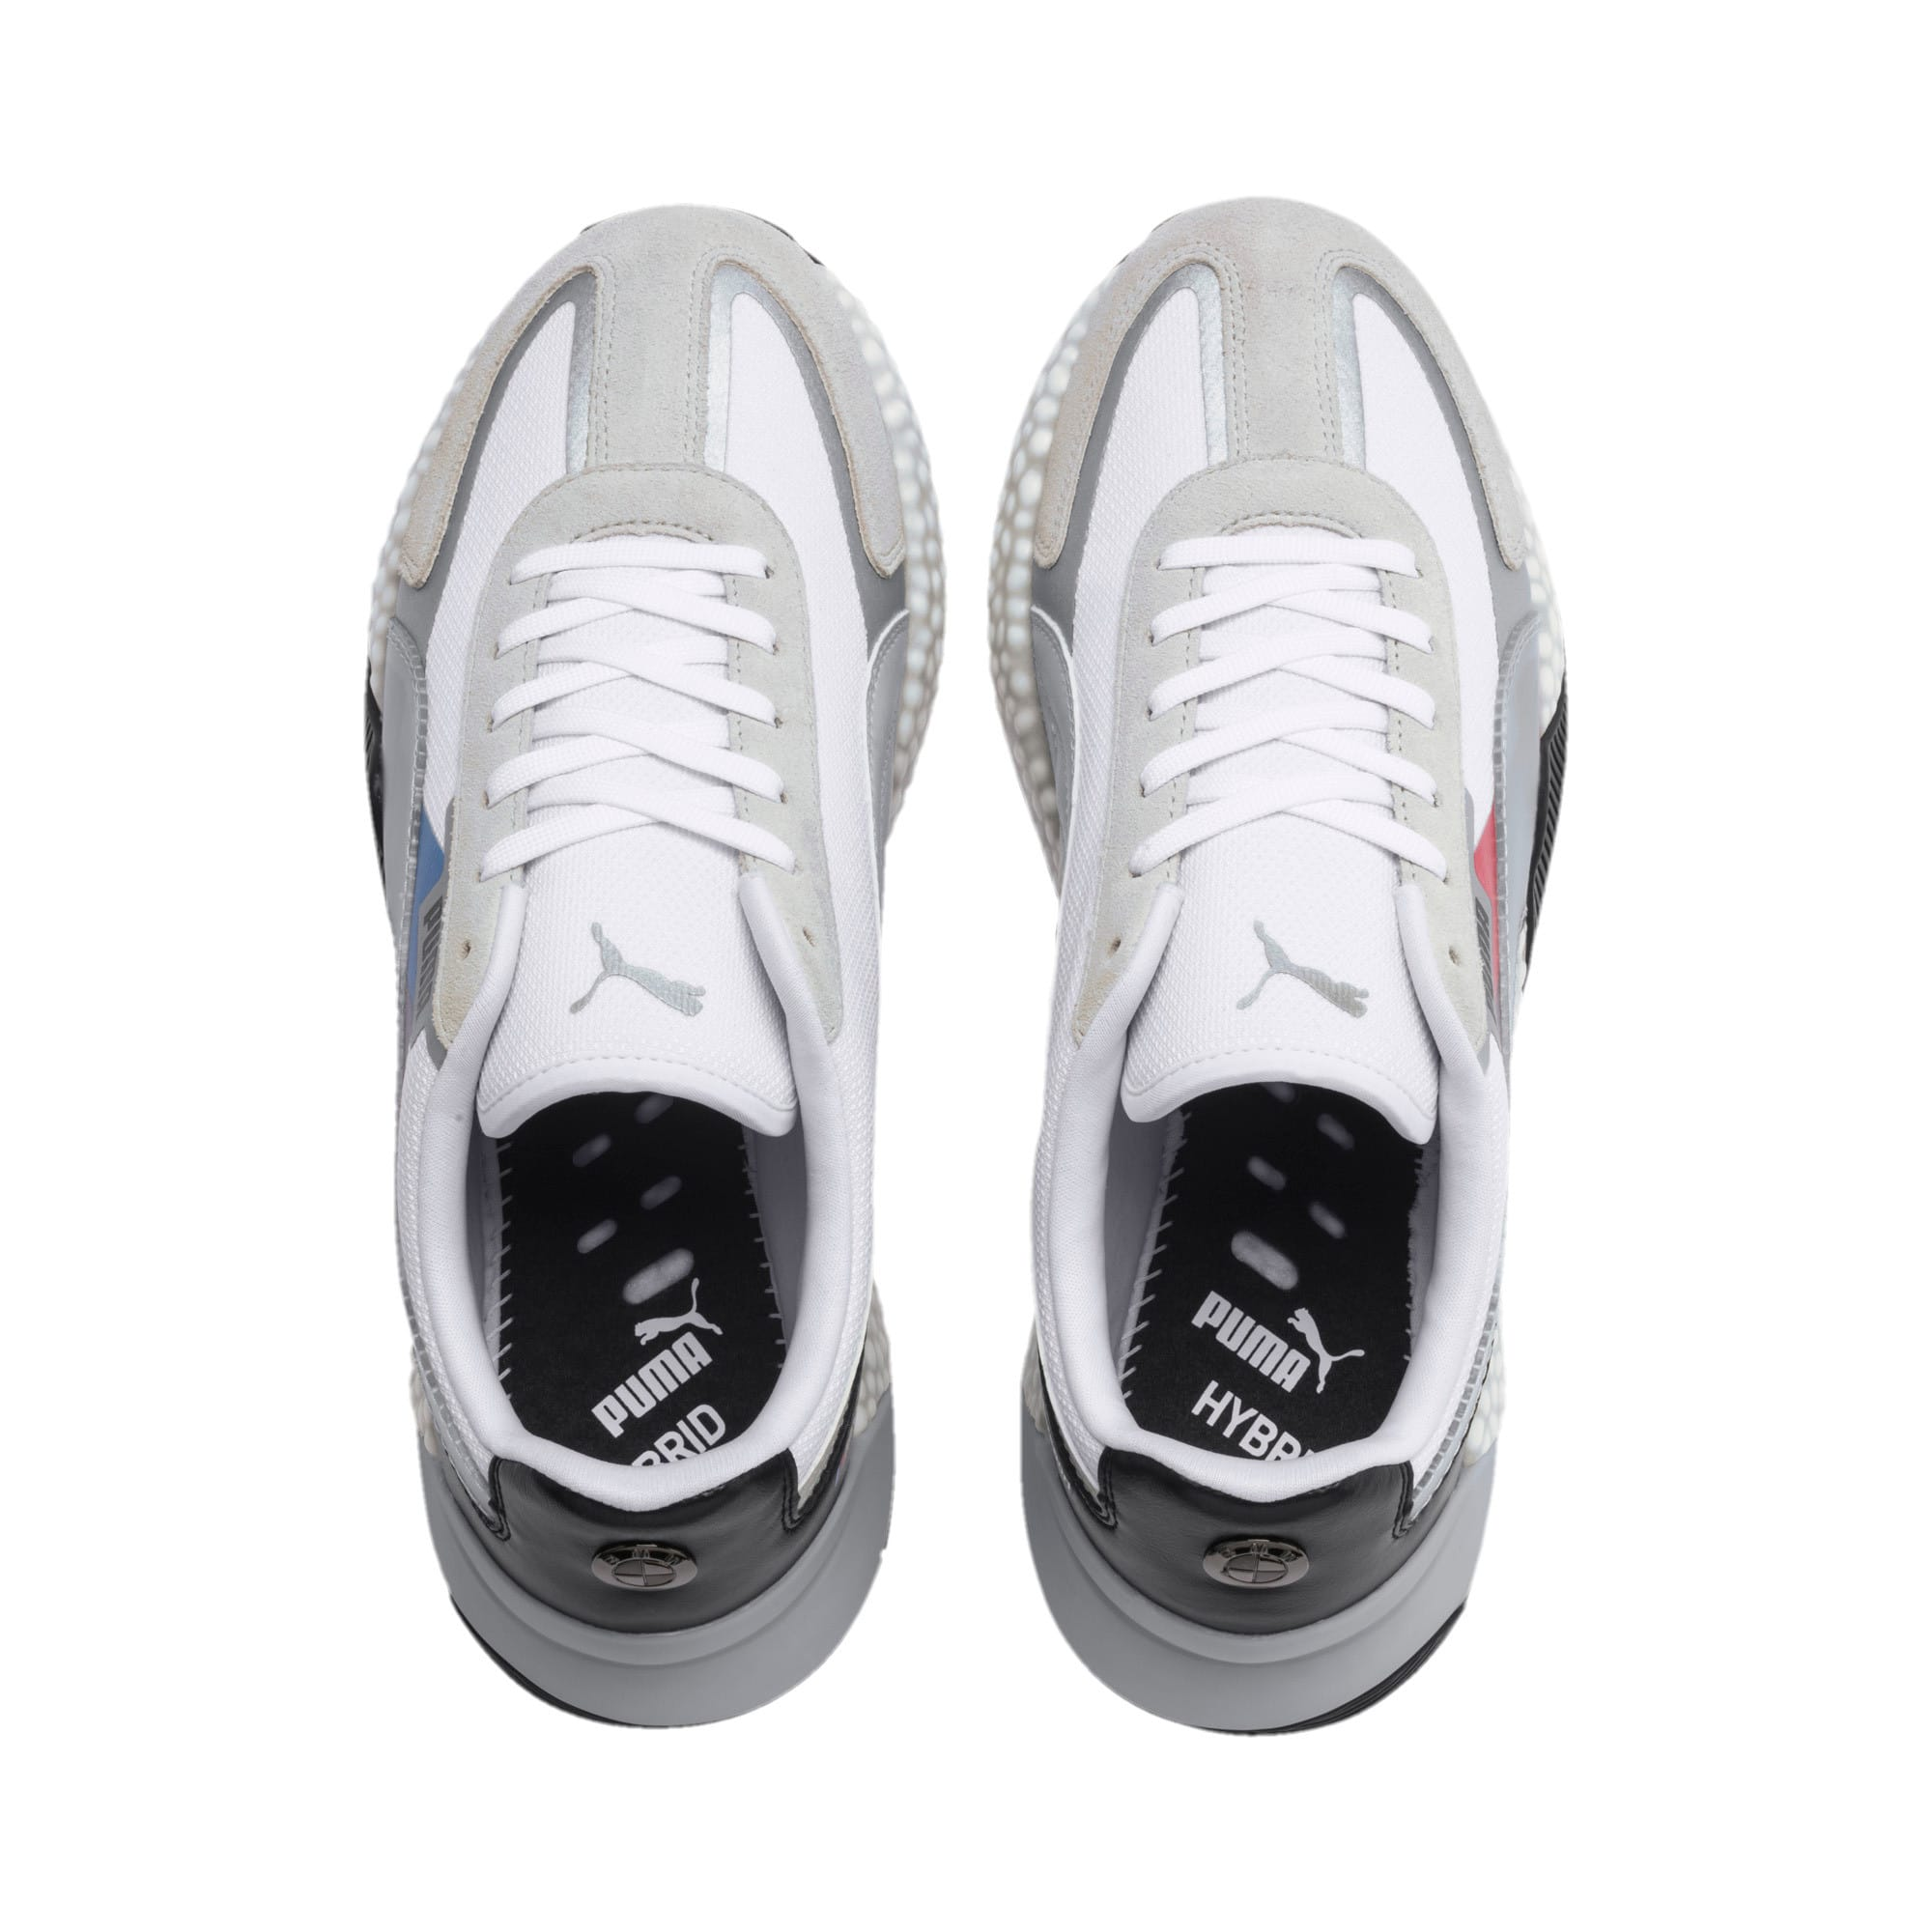 Thumbnail 7 of BMW M Motorsport Speed HYBRID Trainers, White-Glacier Gray-Black, medium